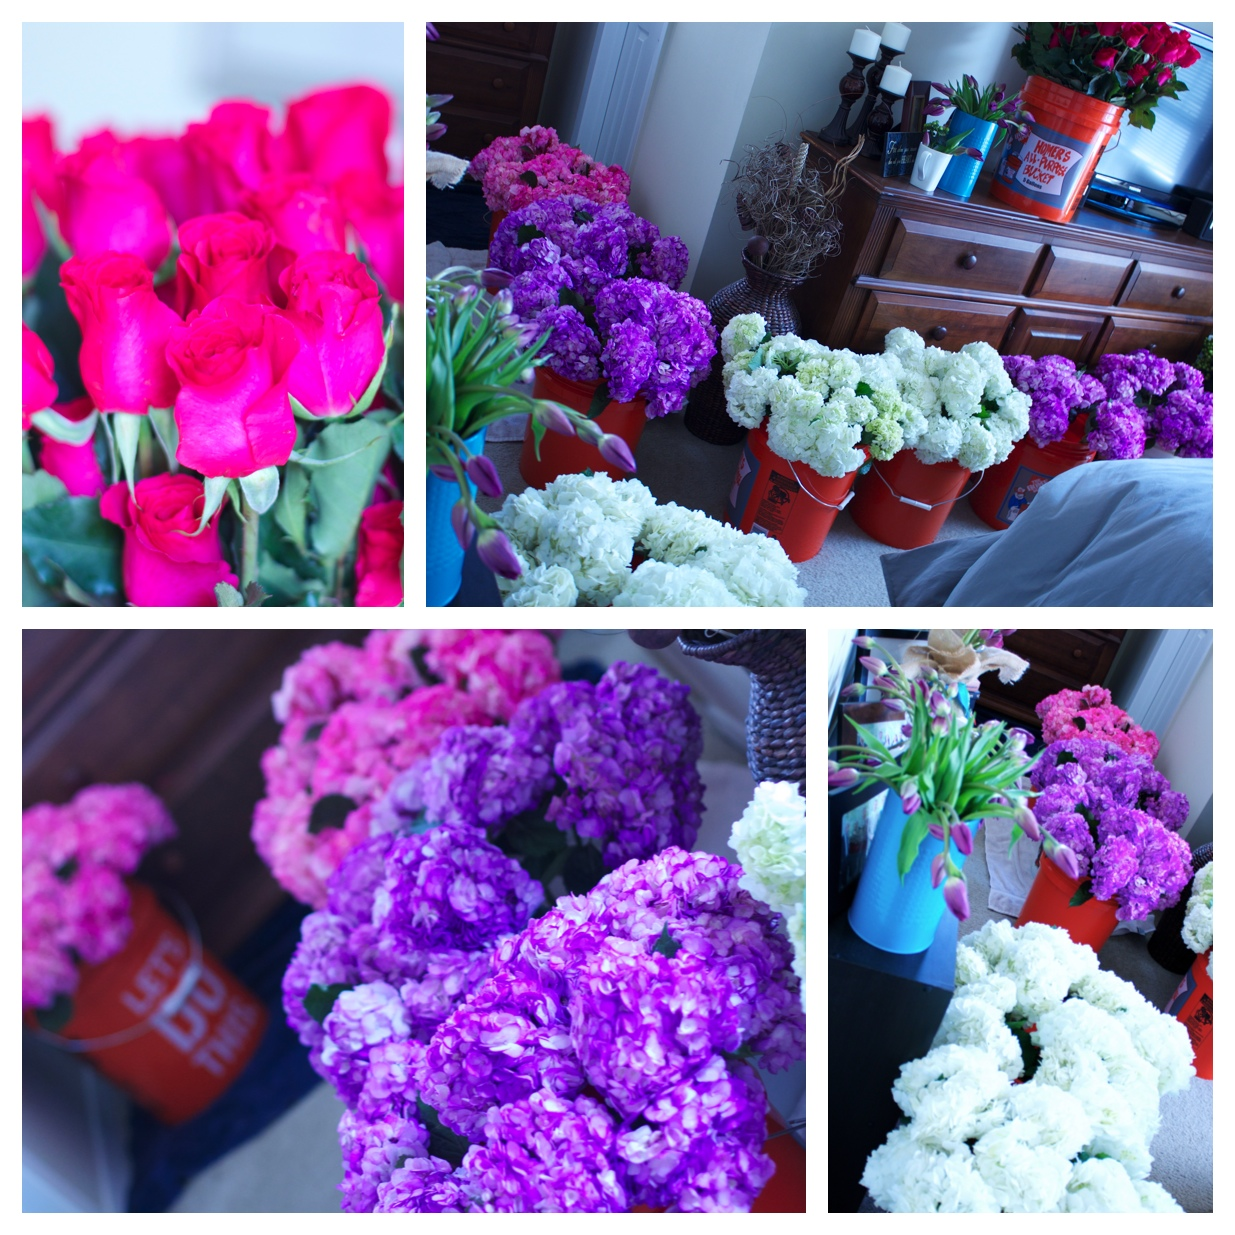 Oh my word our tiny apartment was busting with flowers! (did I mention my hubby's allergic? oops!)